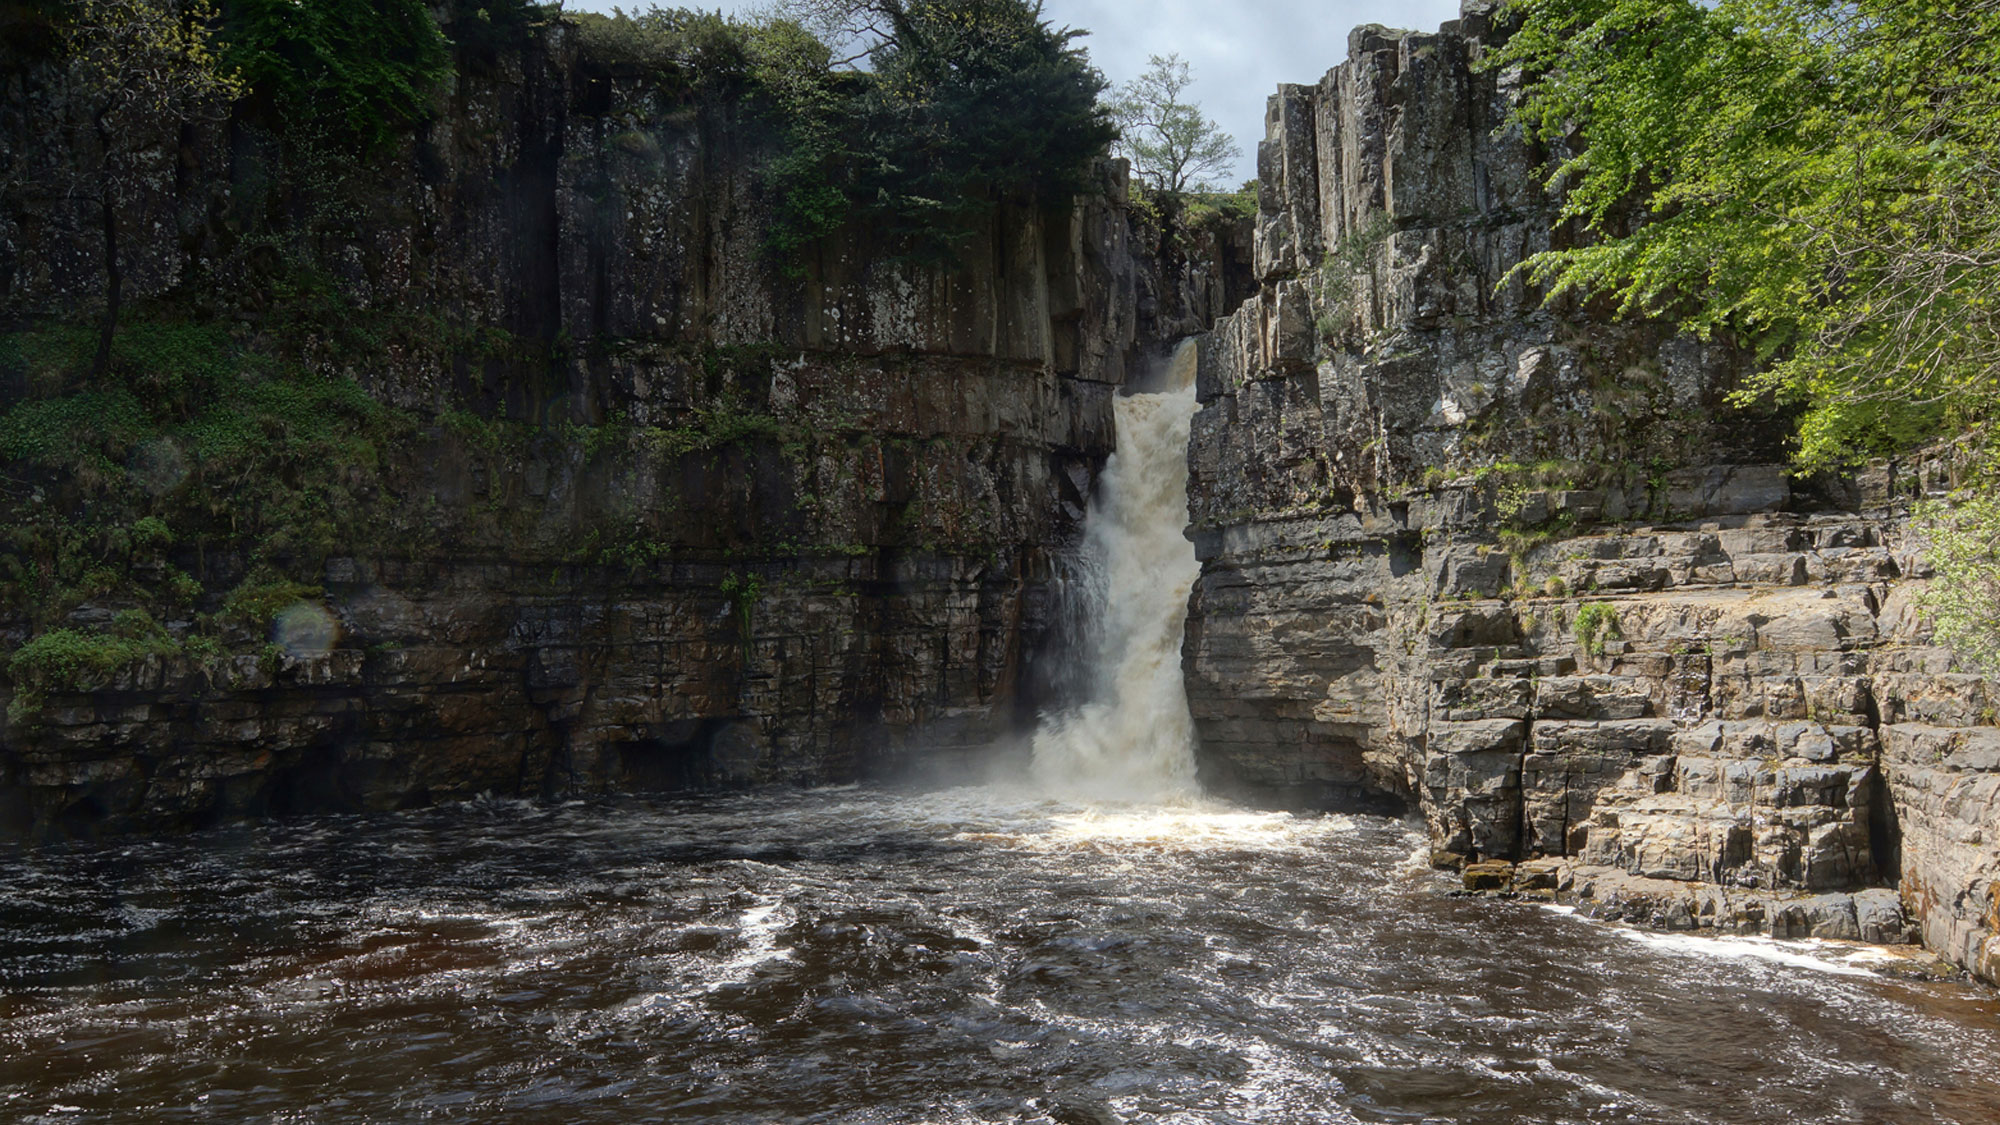 Teesdale & High Force